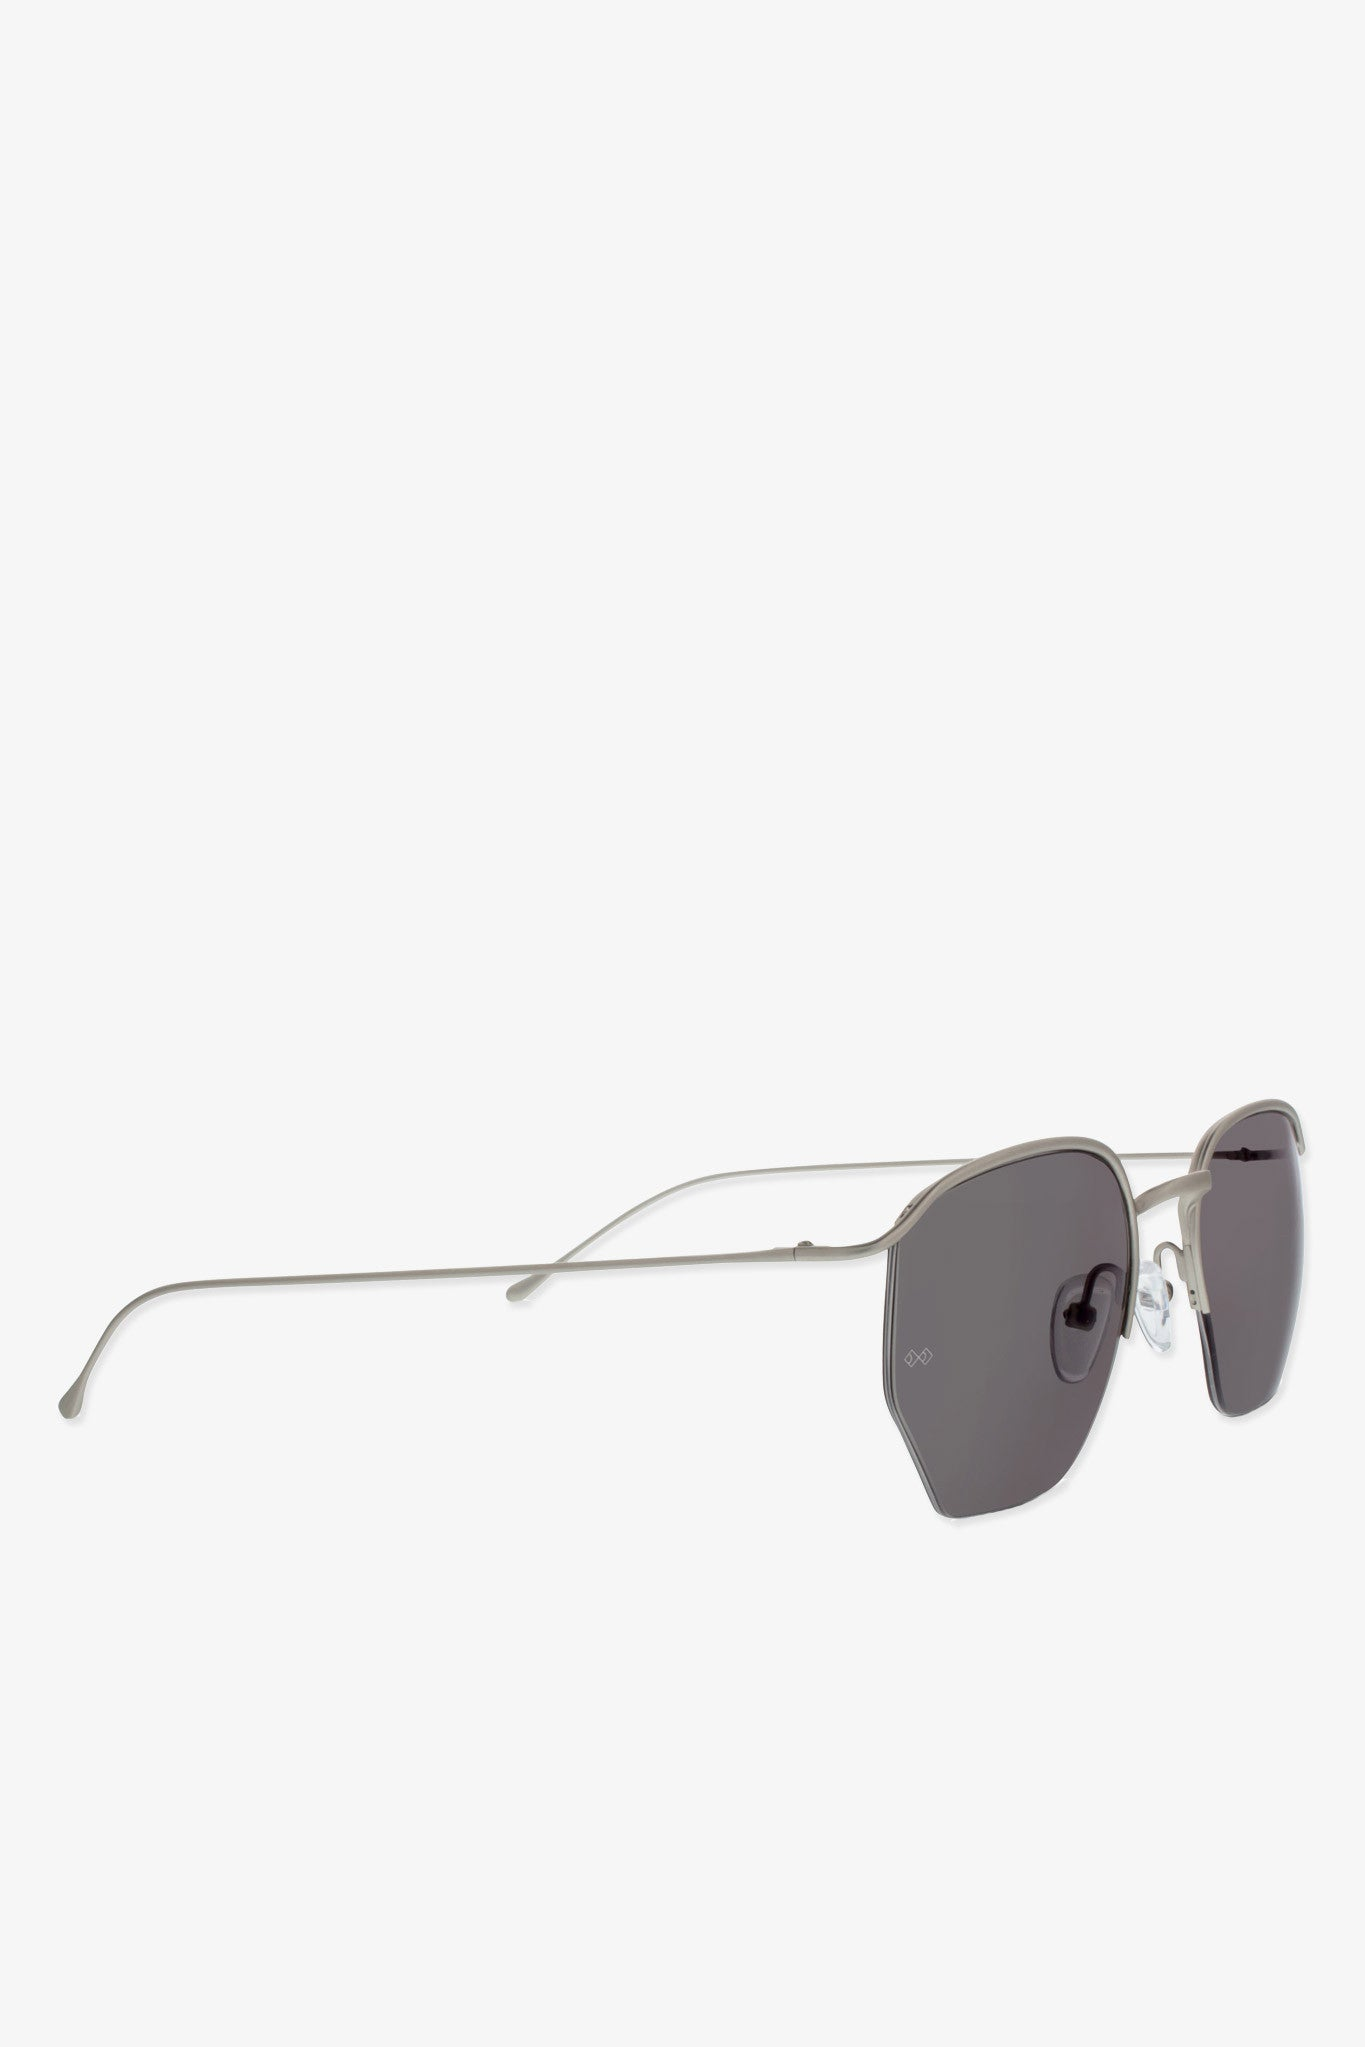 Smoke x Mirrors Geo I sunglasses in matte silver - Vert & Vogue